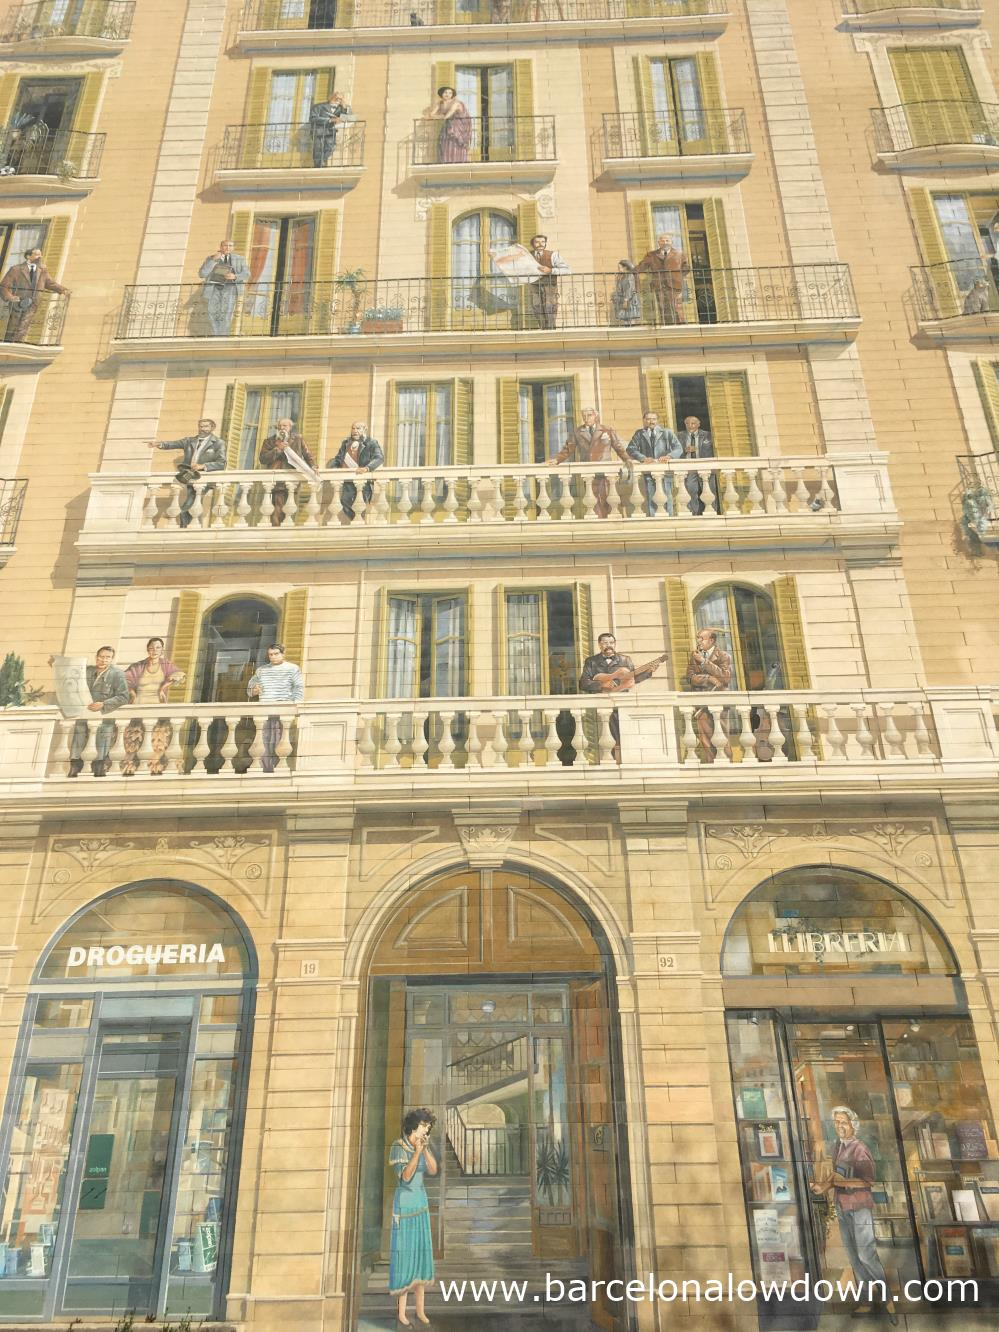 Life size mural of a building painted on the side of a building in Barcelona's L'Eixample neighbourhood